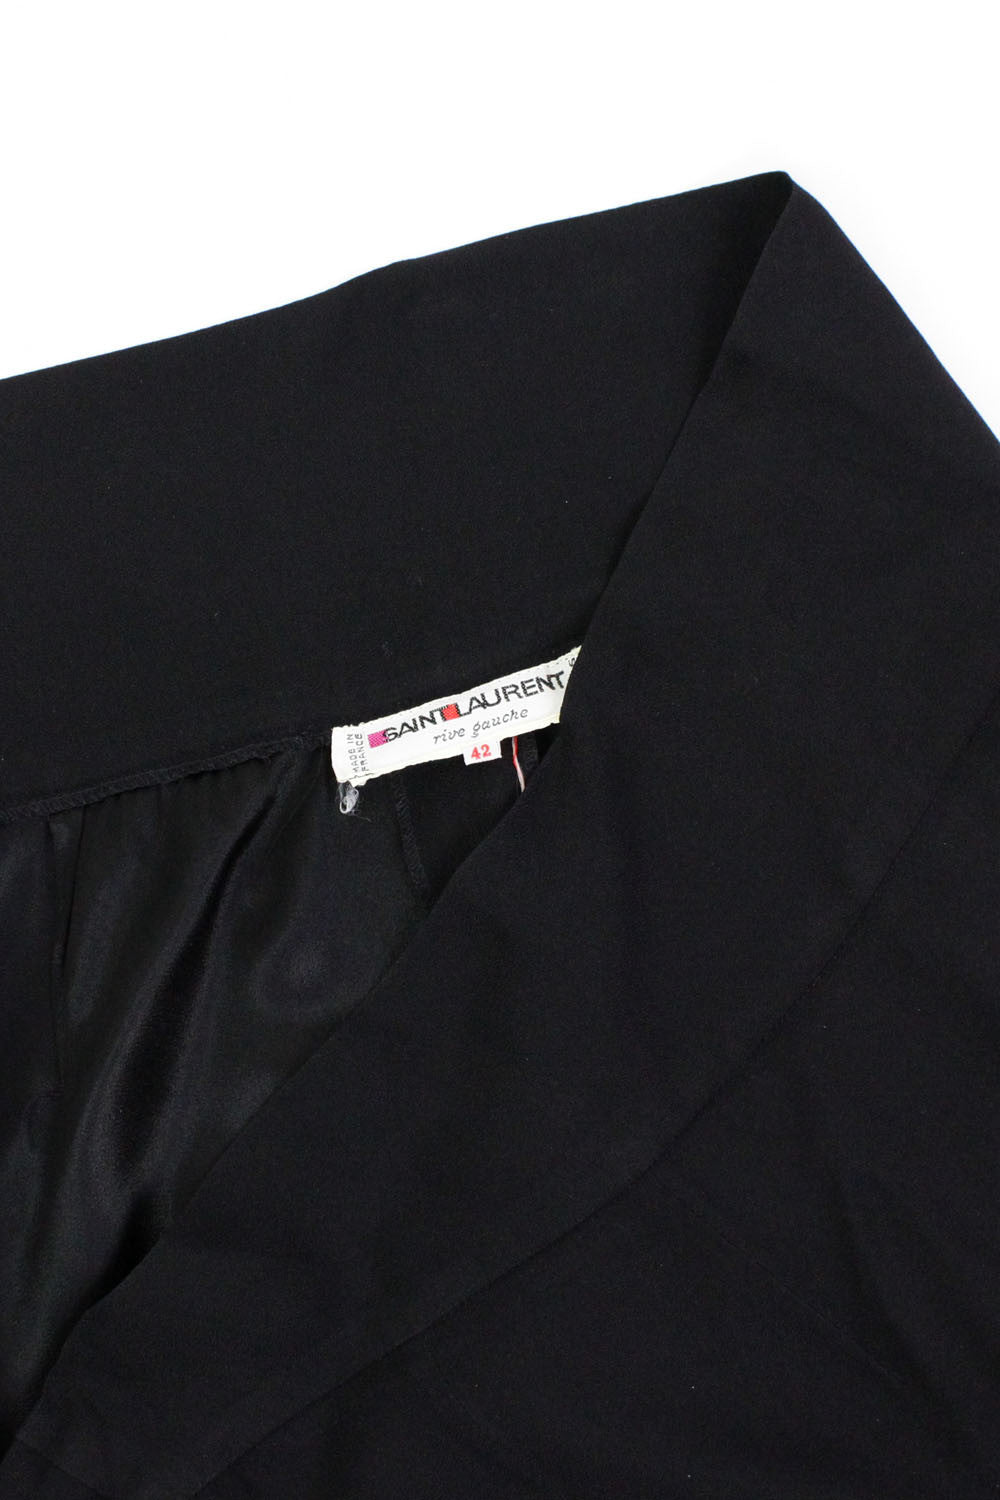 Yves Saint Laurent Wrap Skirt M/L